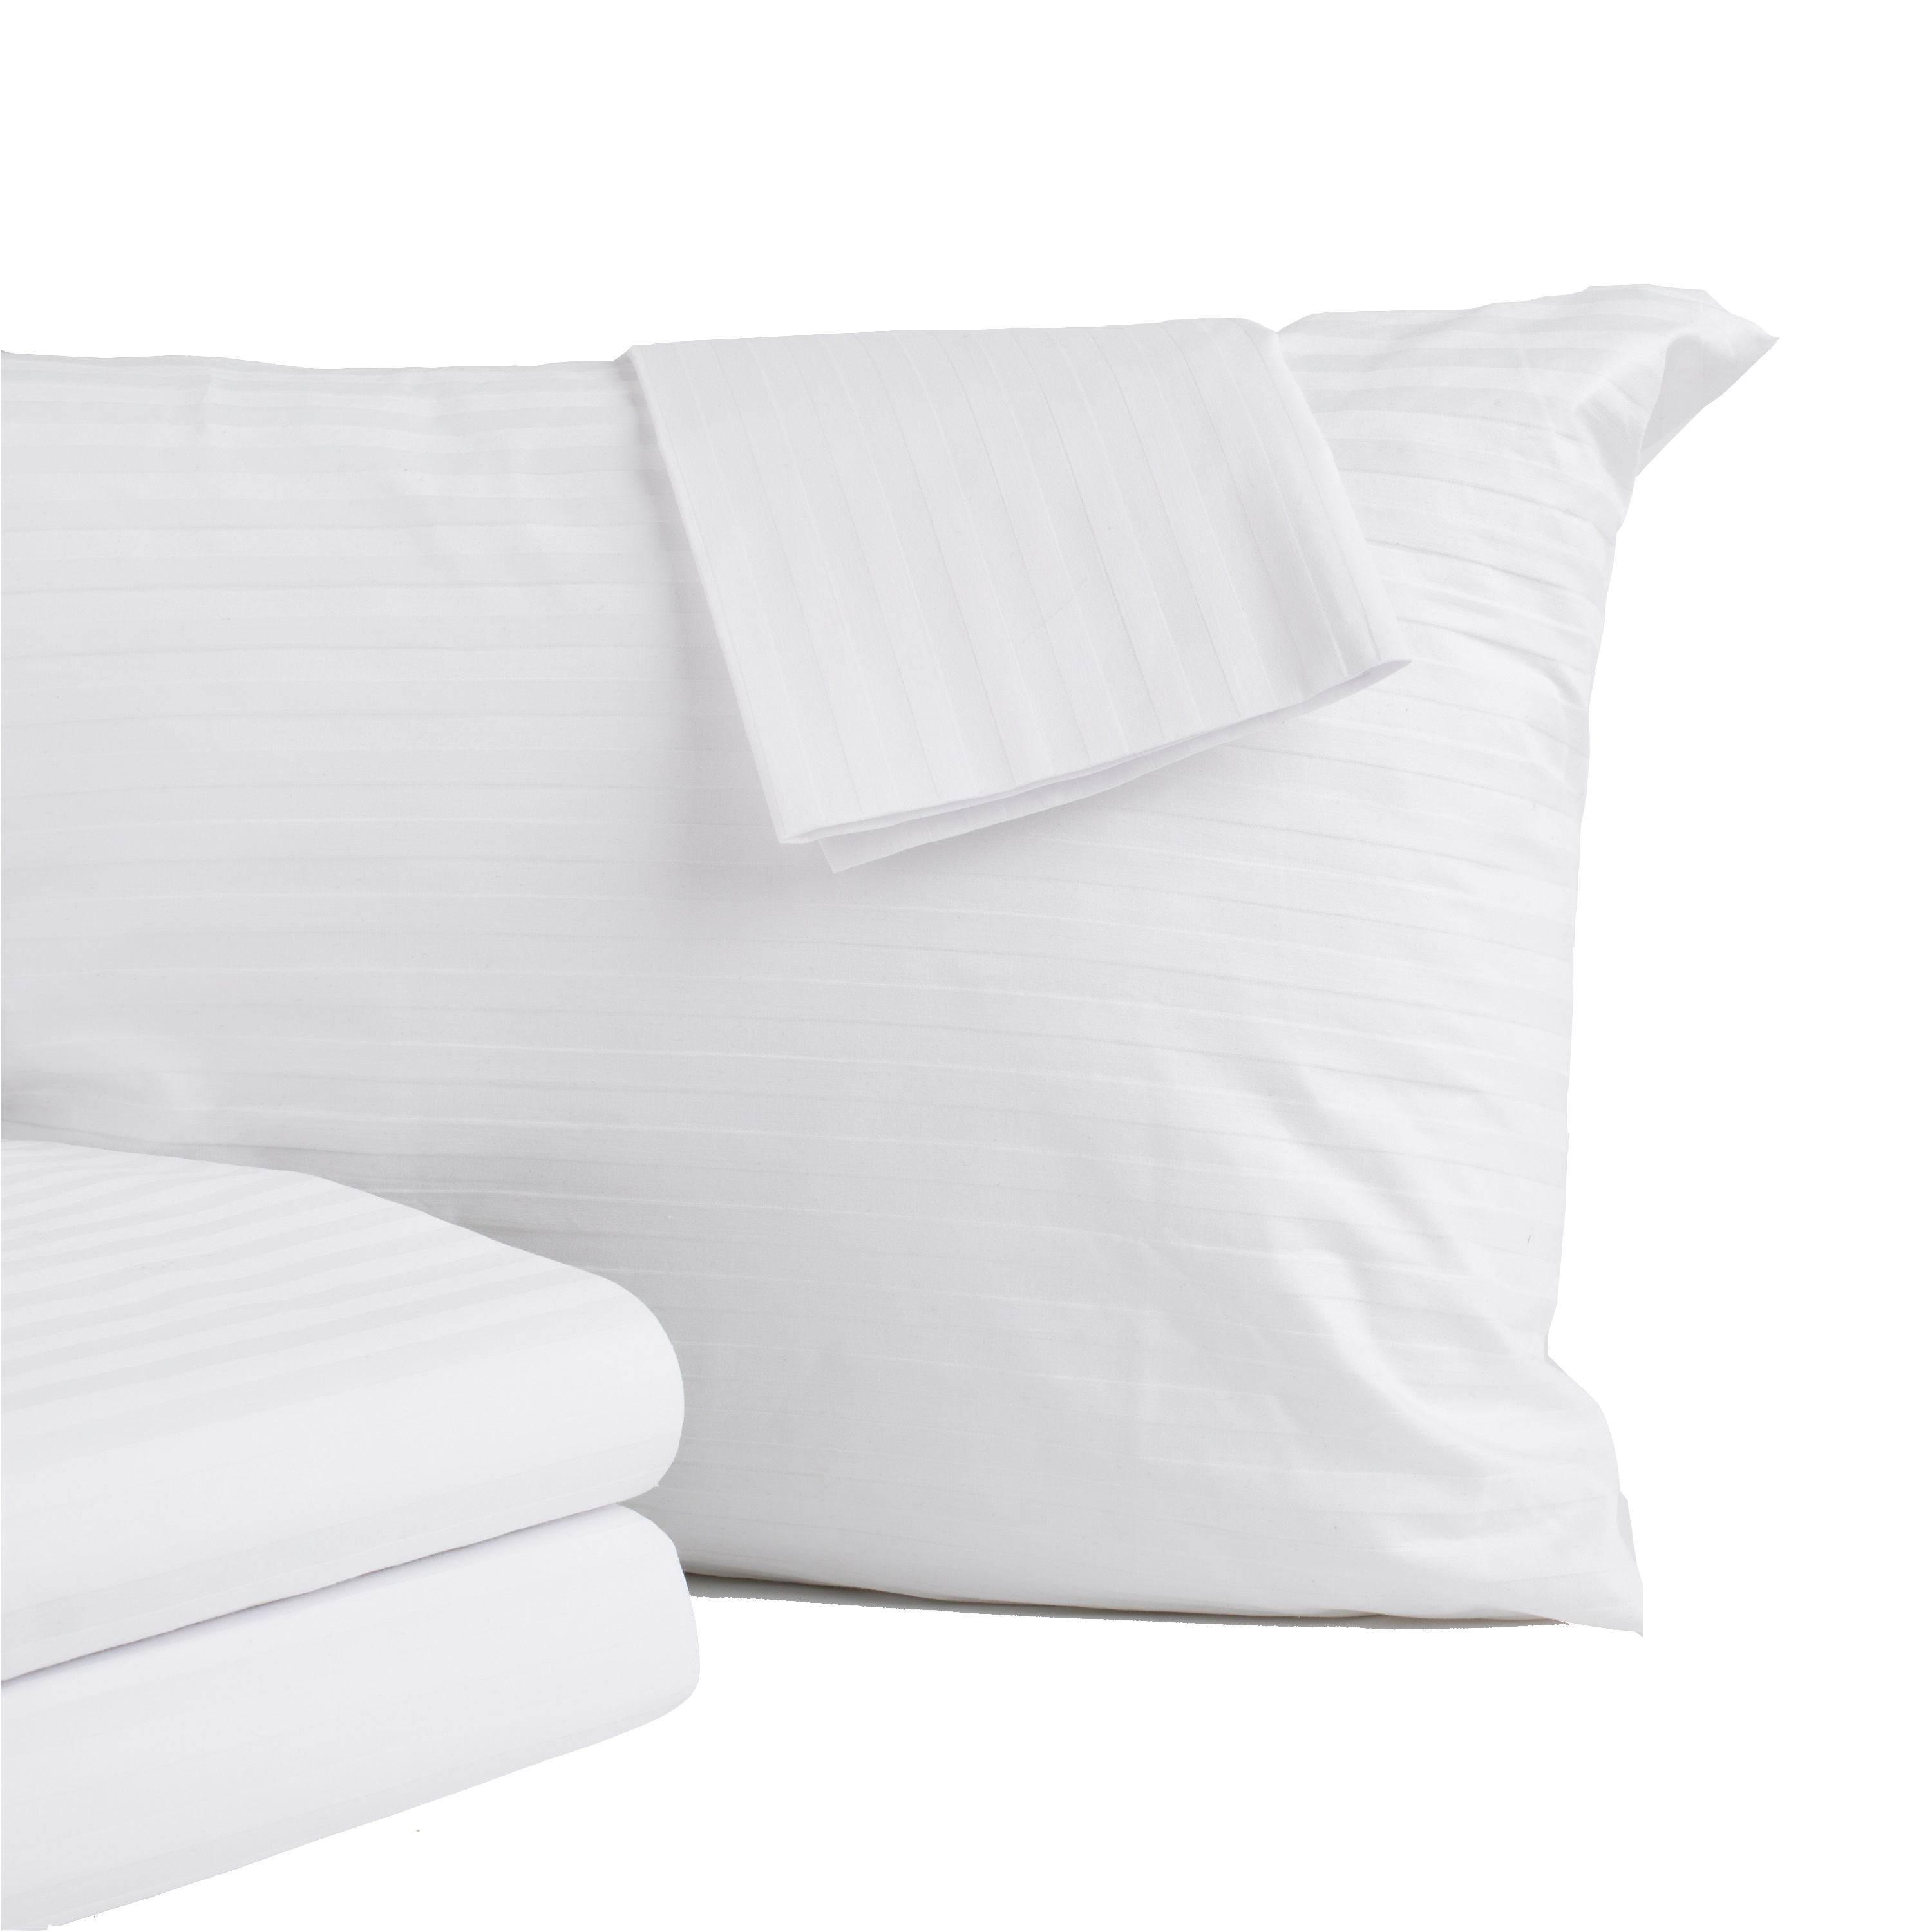 Click here to buy 8-Pack 100% Cotton Zippered Pillow Covers by Home Fashion Designs.